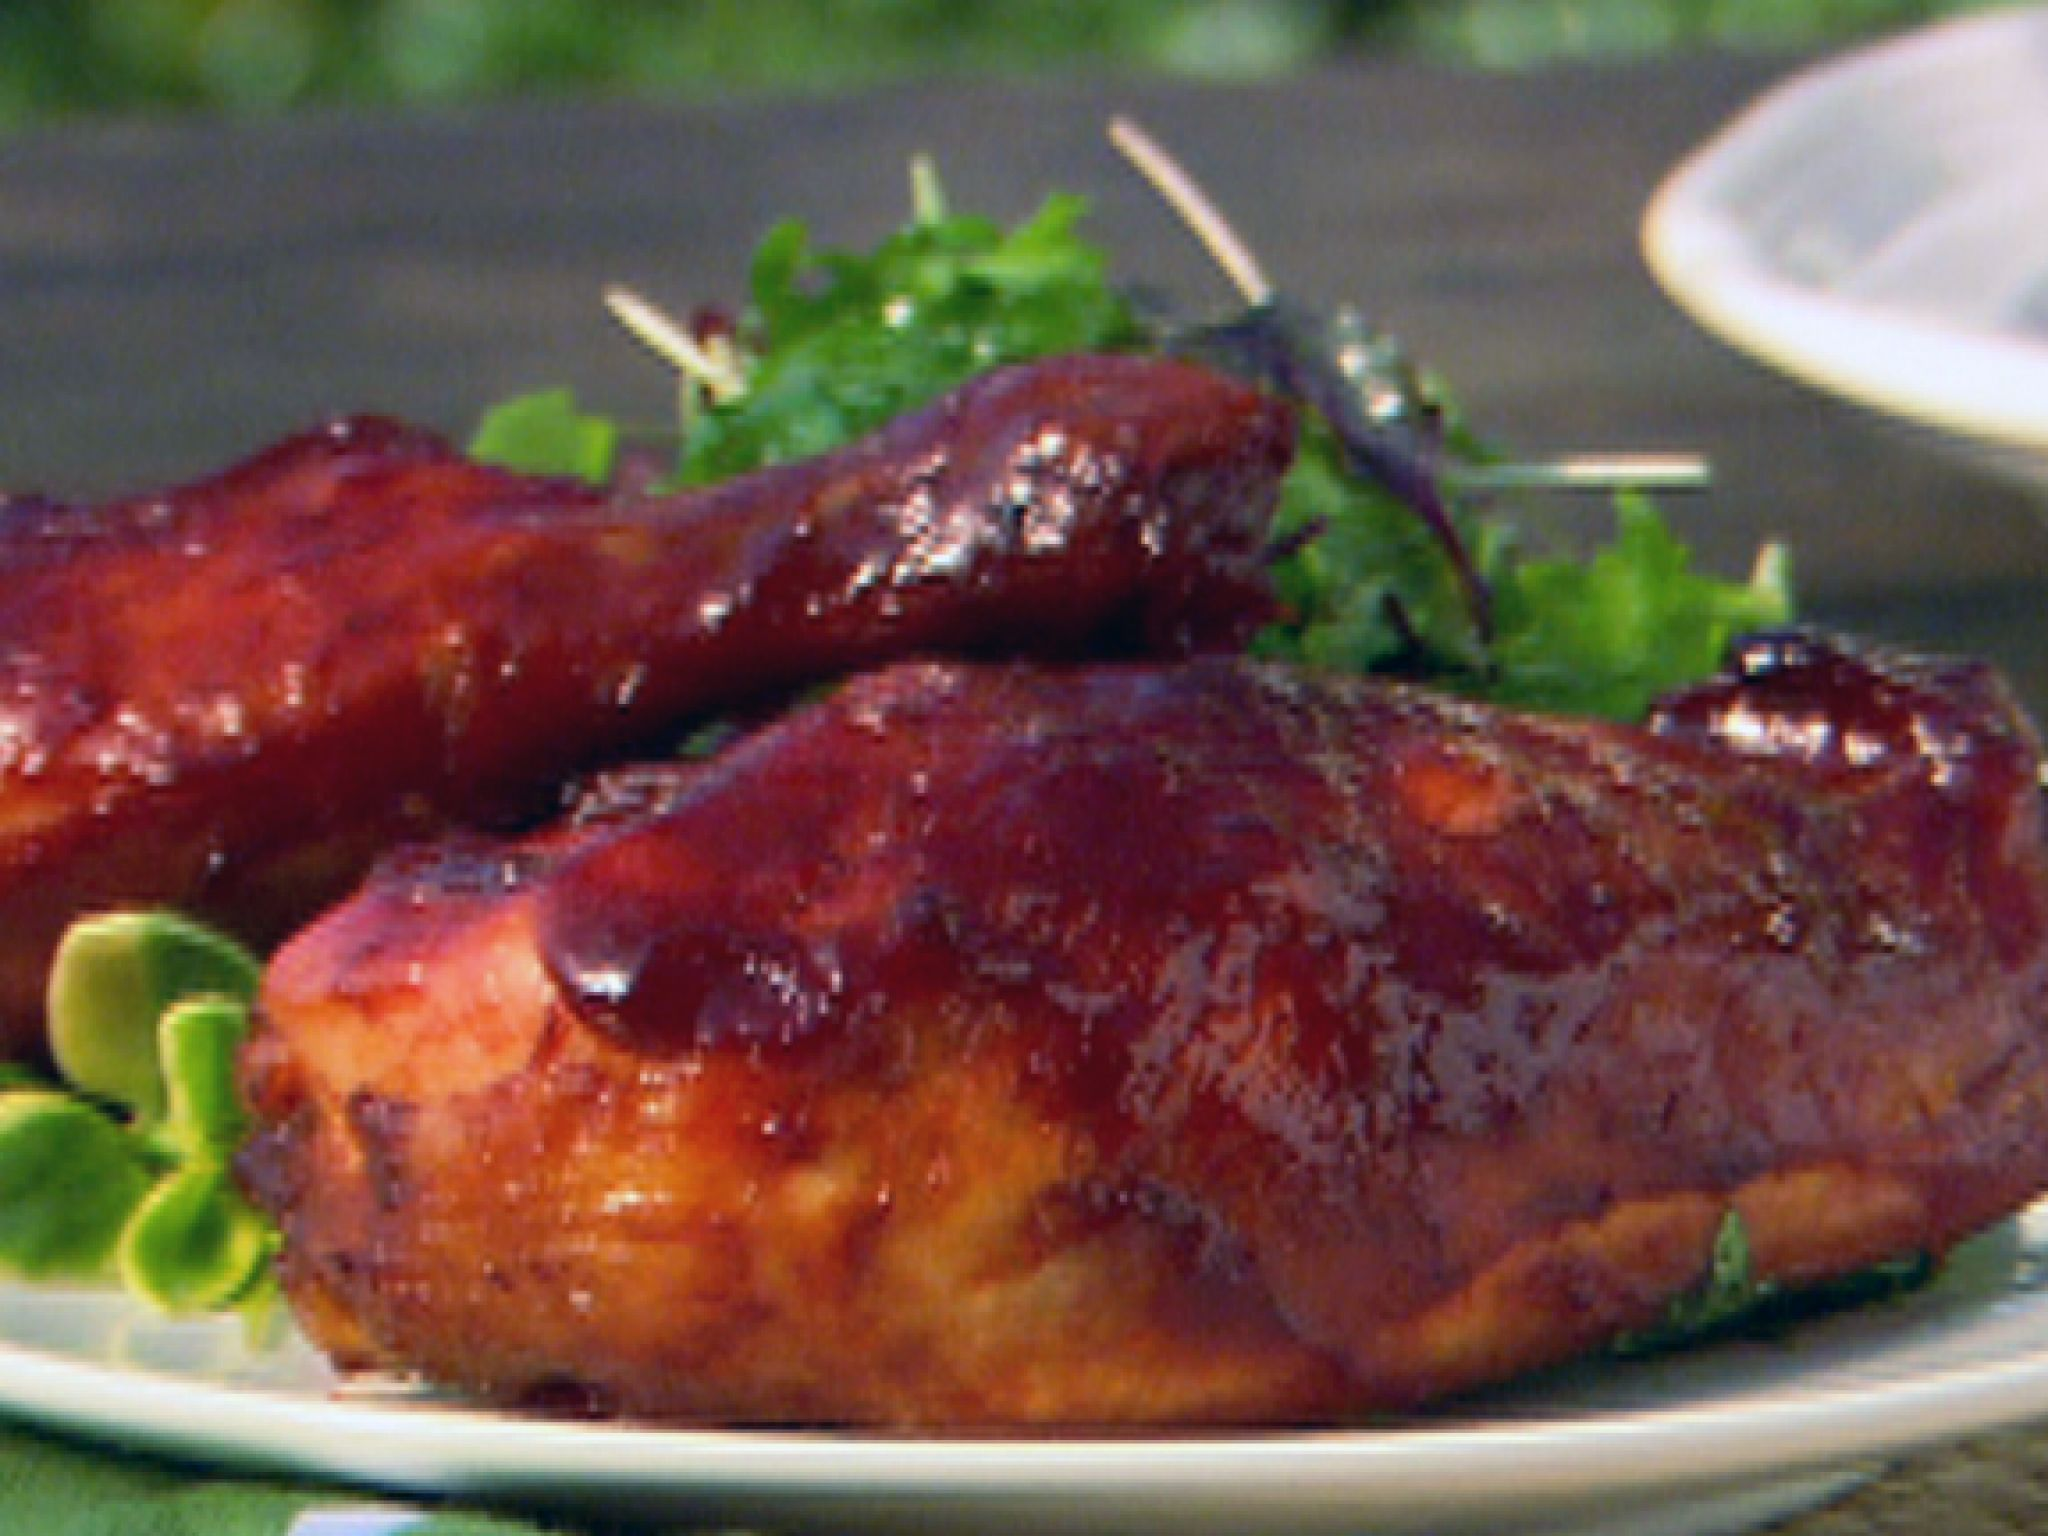 The deen brothers bbq chicken recipe chicken pinterest the deen brothers bbq chicken recipe chicken pinterest boneless skinless chicken recipes and food forumfinder Choice Image